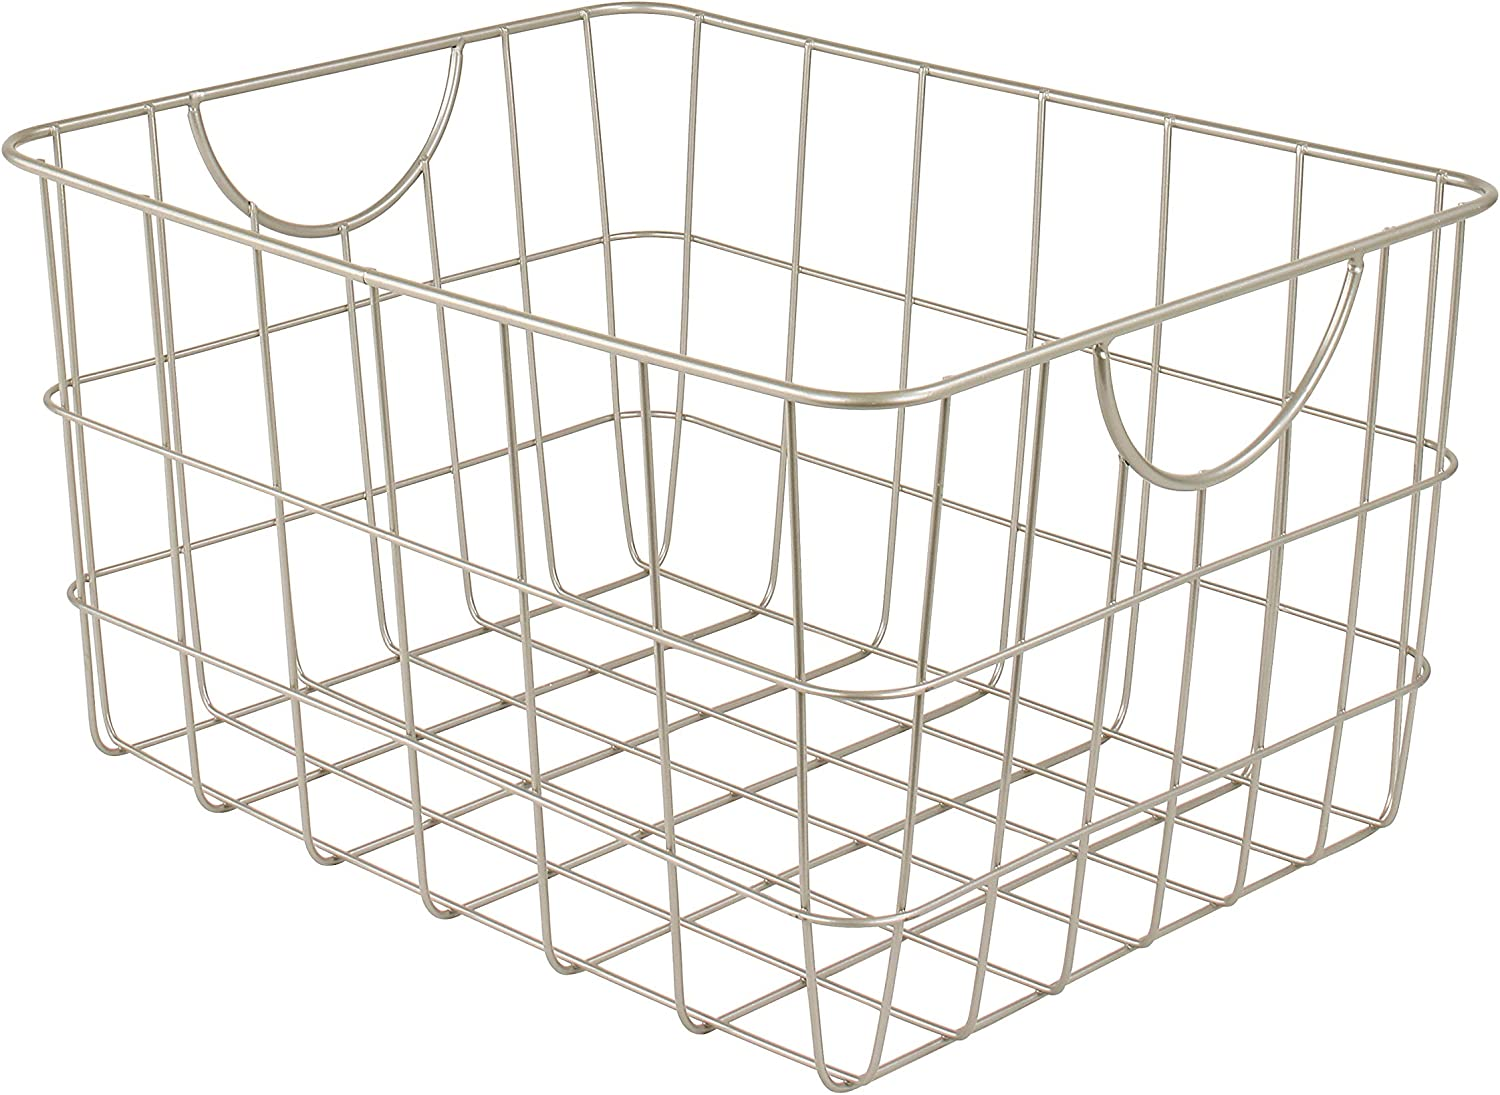 Spectrum Diversified Utility Basket, Sturdy Steel Wire Storage Solution, Curved Easy Grab Handles Decorative Organization for Toys, Pet Supplies, Clothing, Pantry & More, Satin Nickel